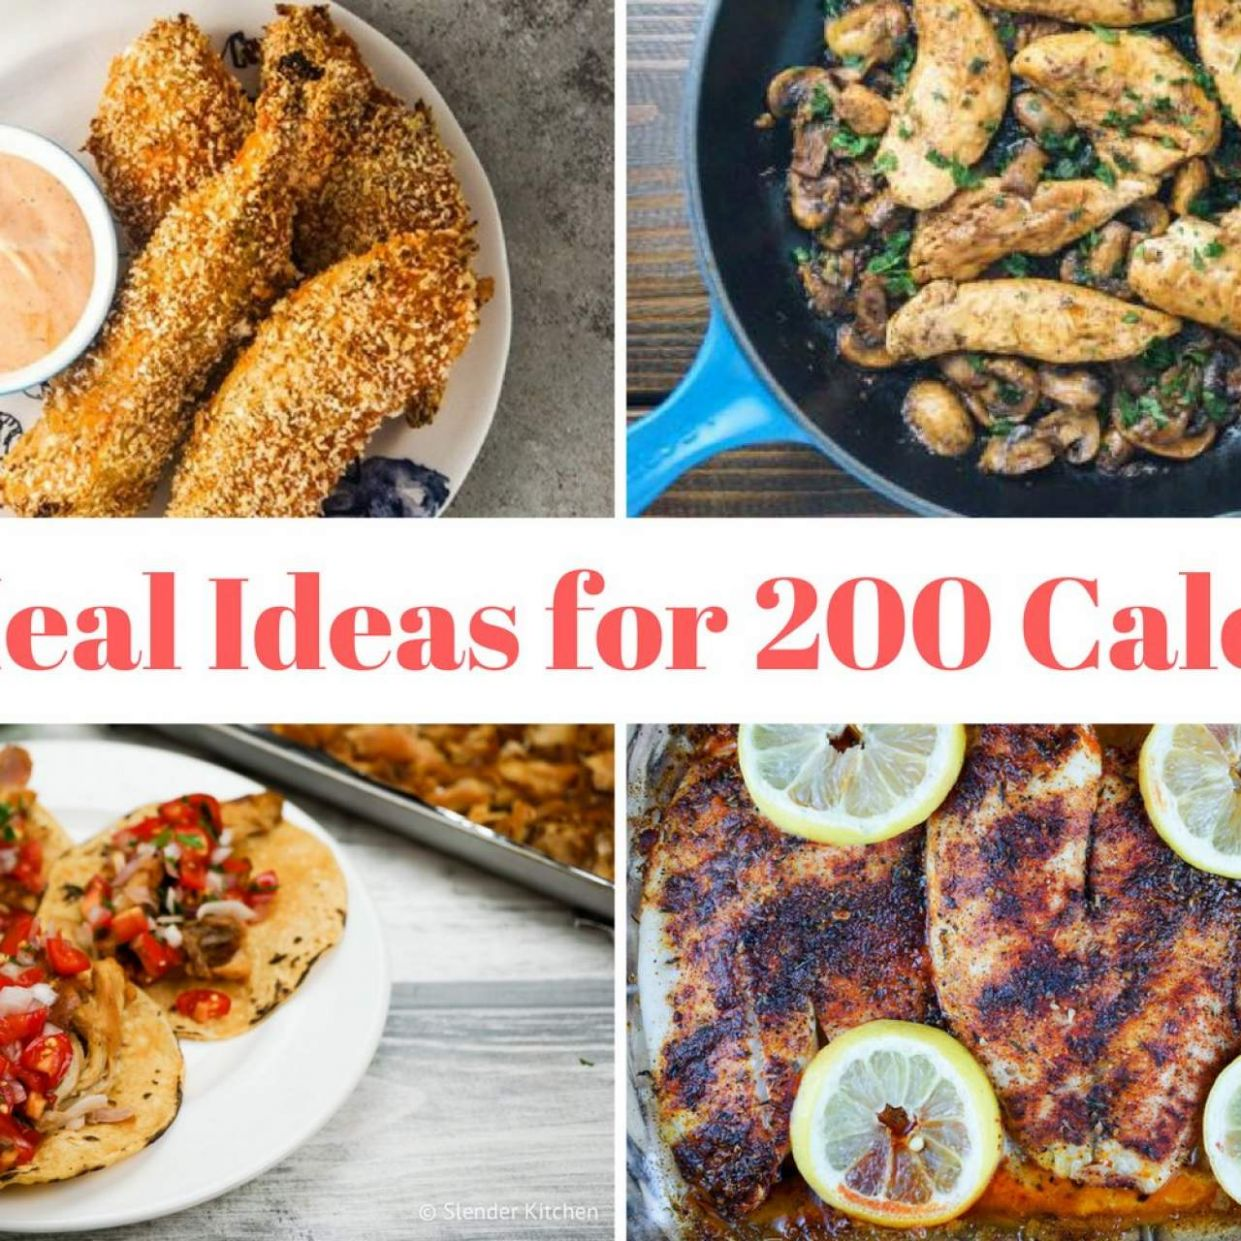 Thirty Six Recipes for 10 Calorie Meals - Slender Kitchen - Breakfast Recipes Under 200 Calories